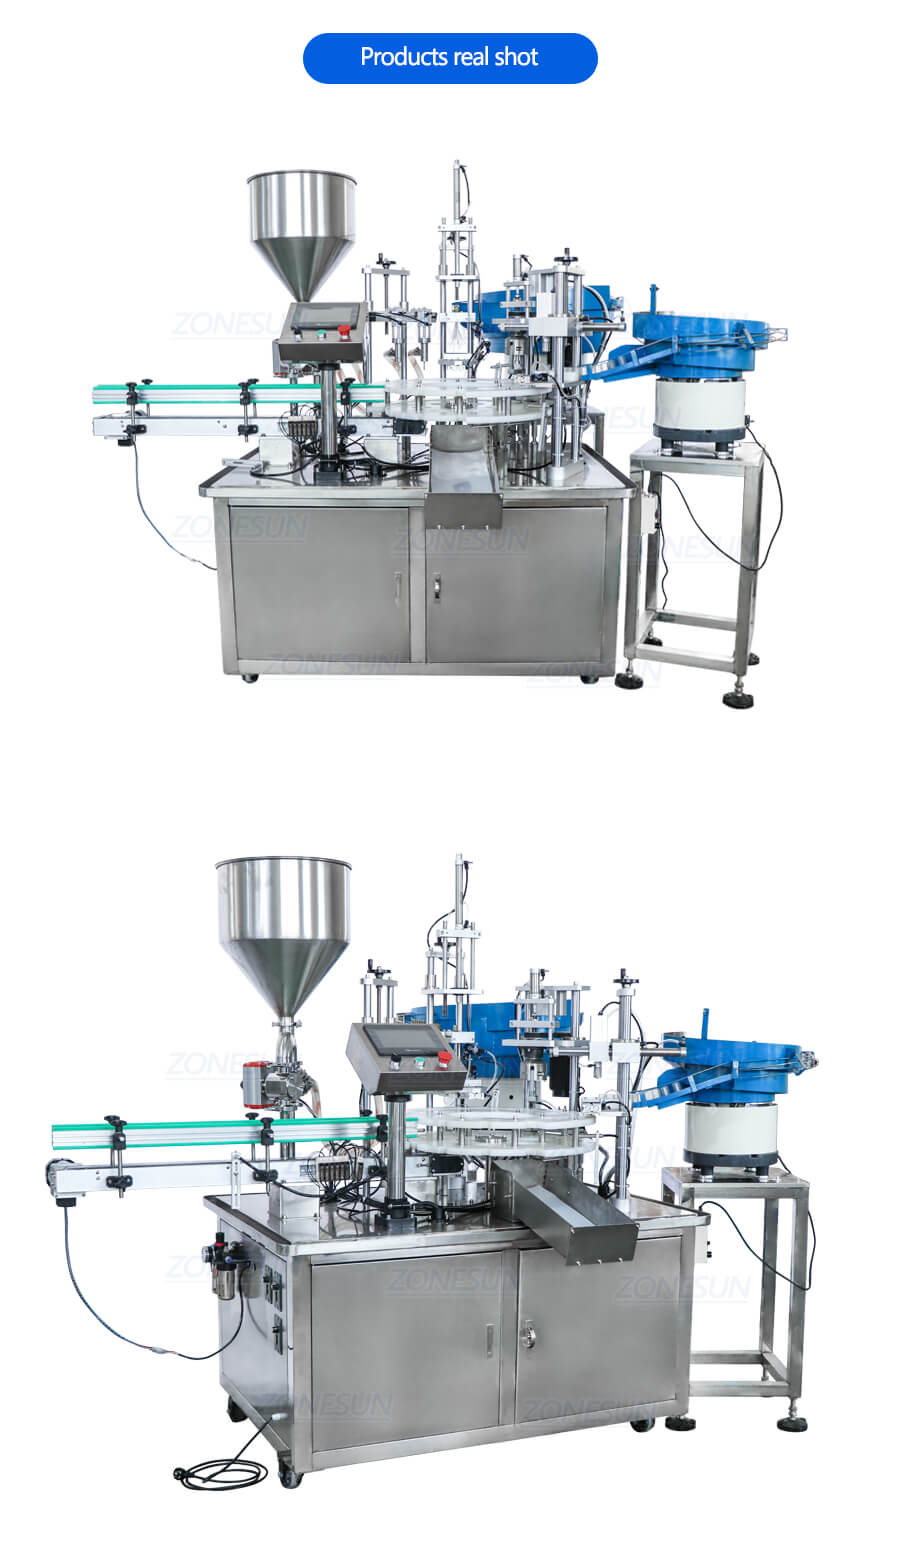 ZS-AFC2 Monoblock Filling Capping Machine